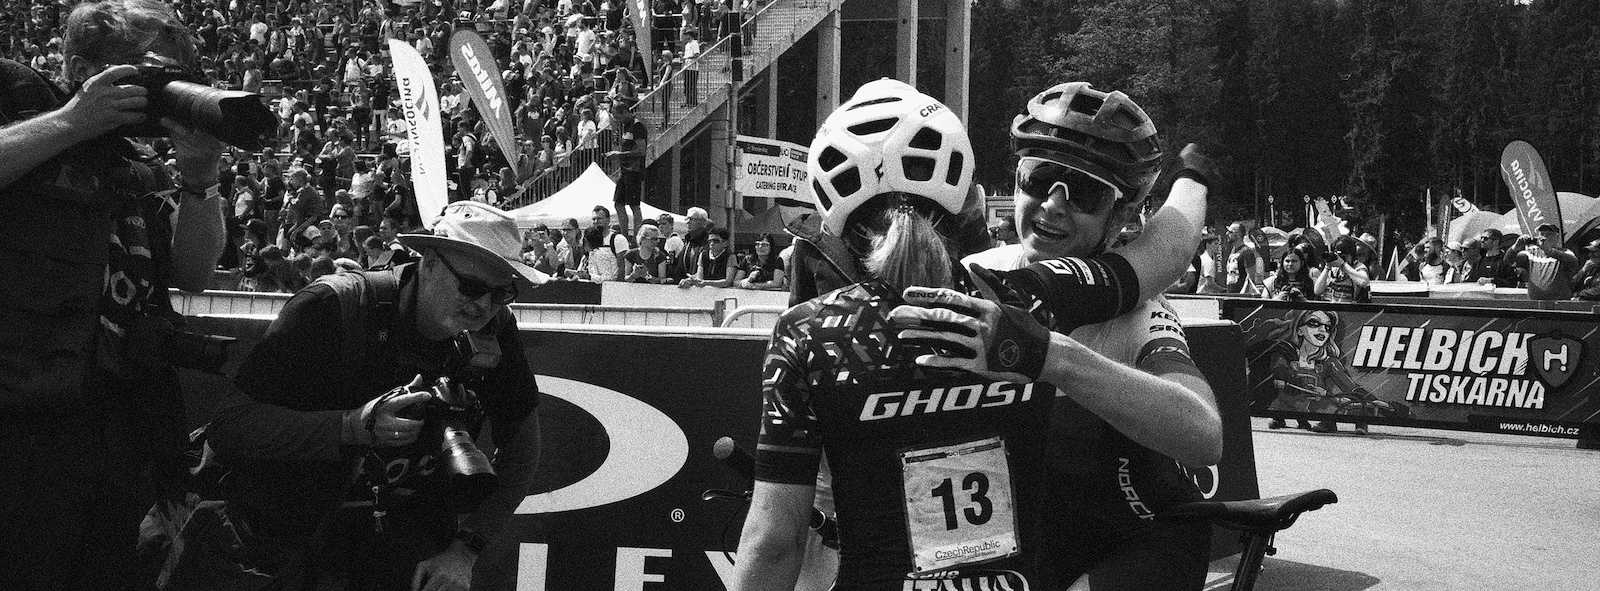 Haley Smith s long awaited first podium finish happened in Nove Mesto after a powerful performance.